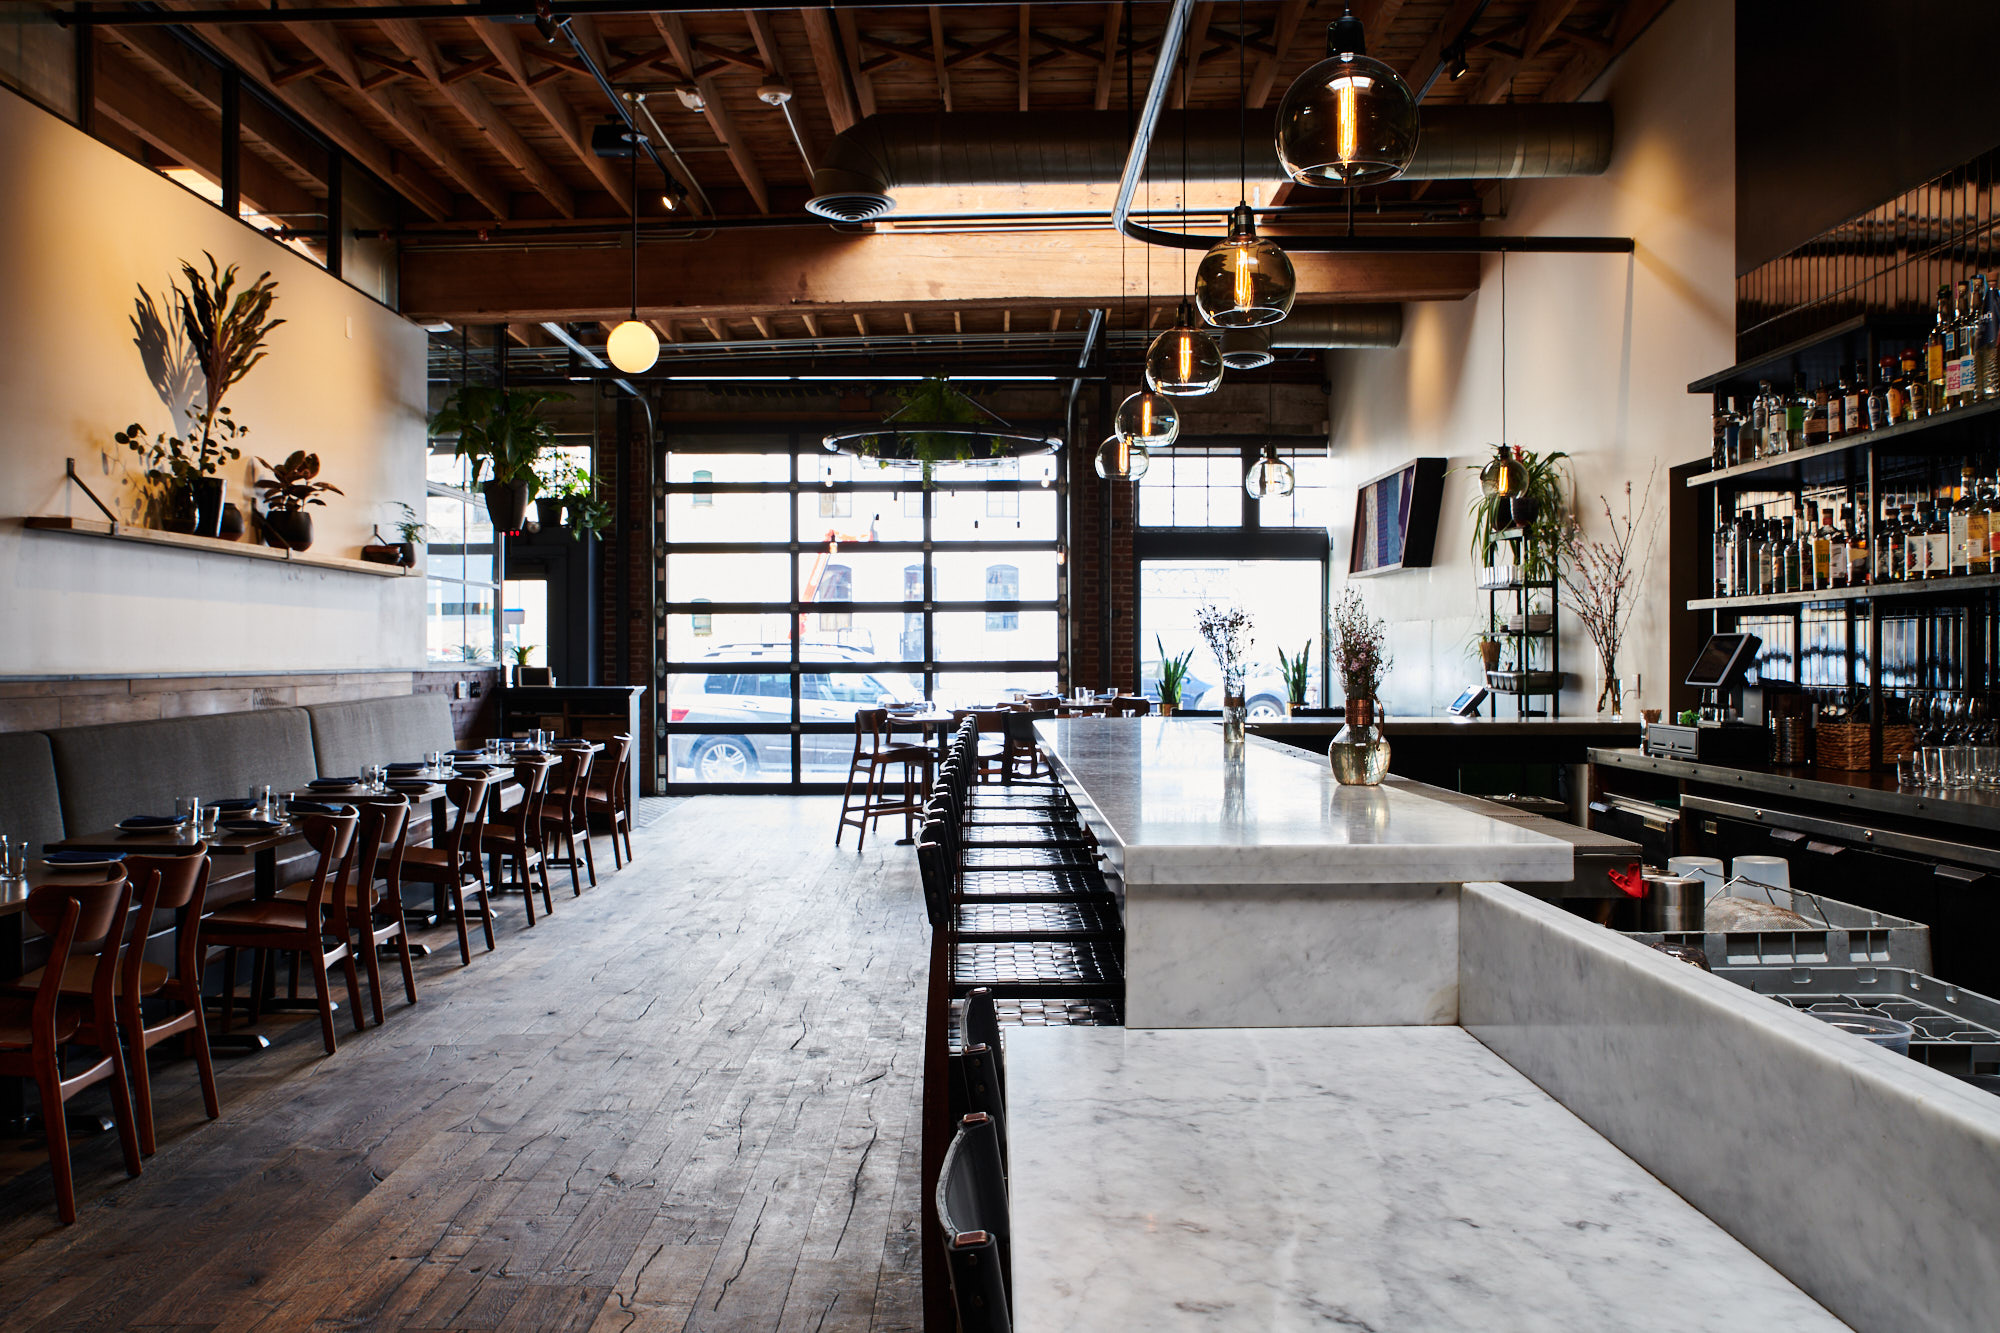 Looking at Bar King from the kitchen, a long white marble bar stretches toward a large garage window, bathed in light. To the left, a line of cushioned banquettes line the wall, with a line of plants on a shelf above.